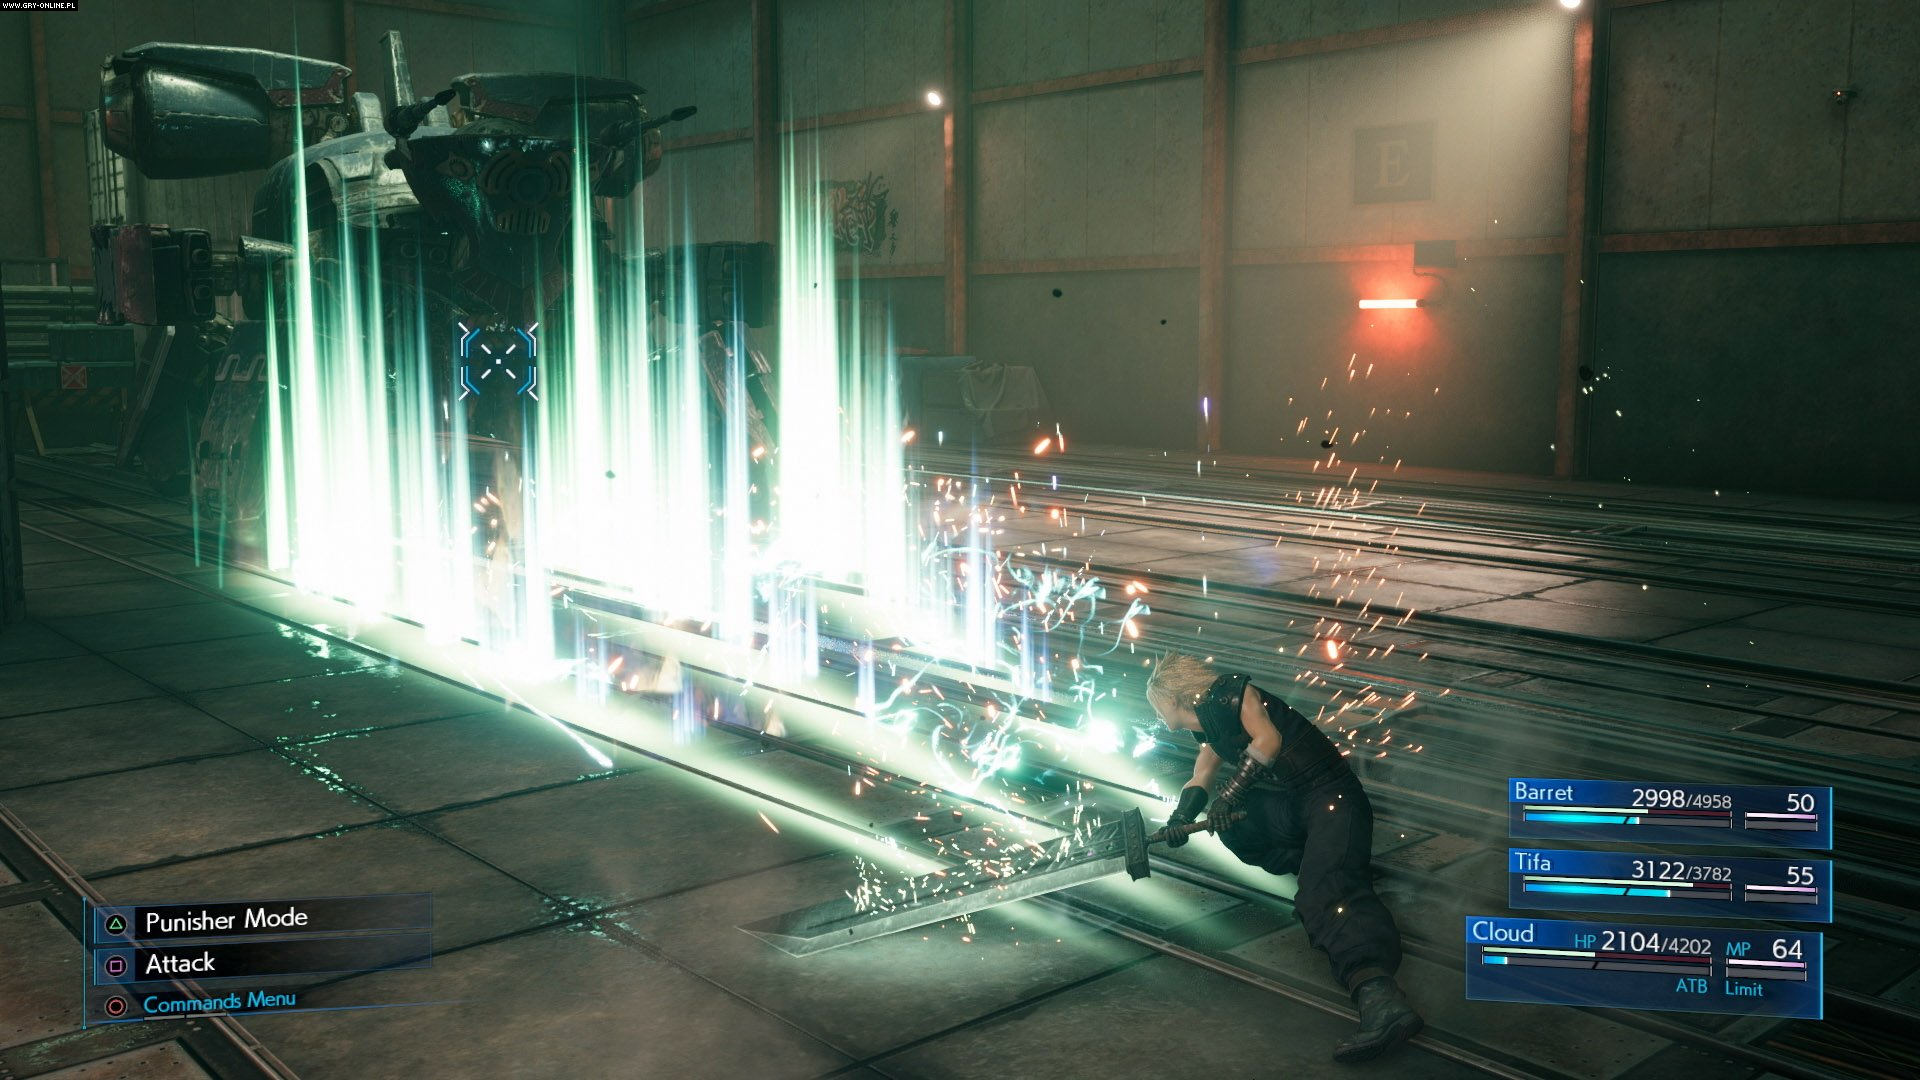 Final Fantasy VII Remake PS4 Games Image 36/86, Square-Enix / Eidos